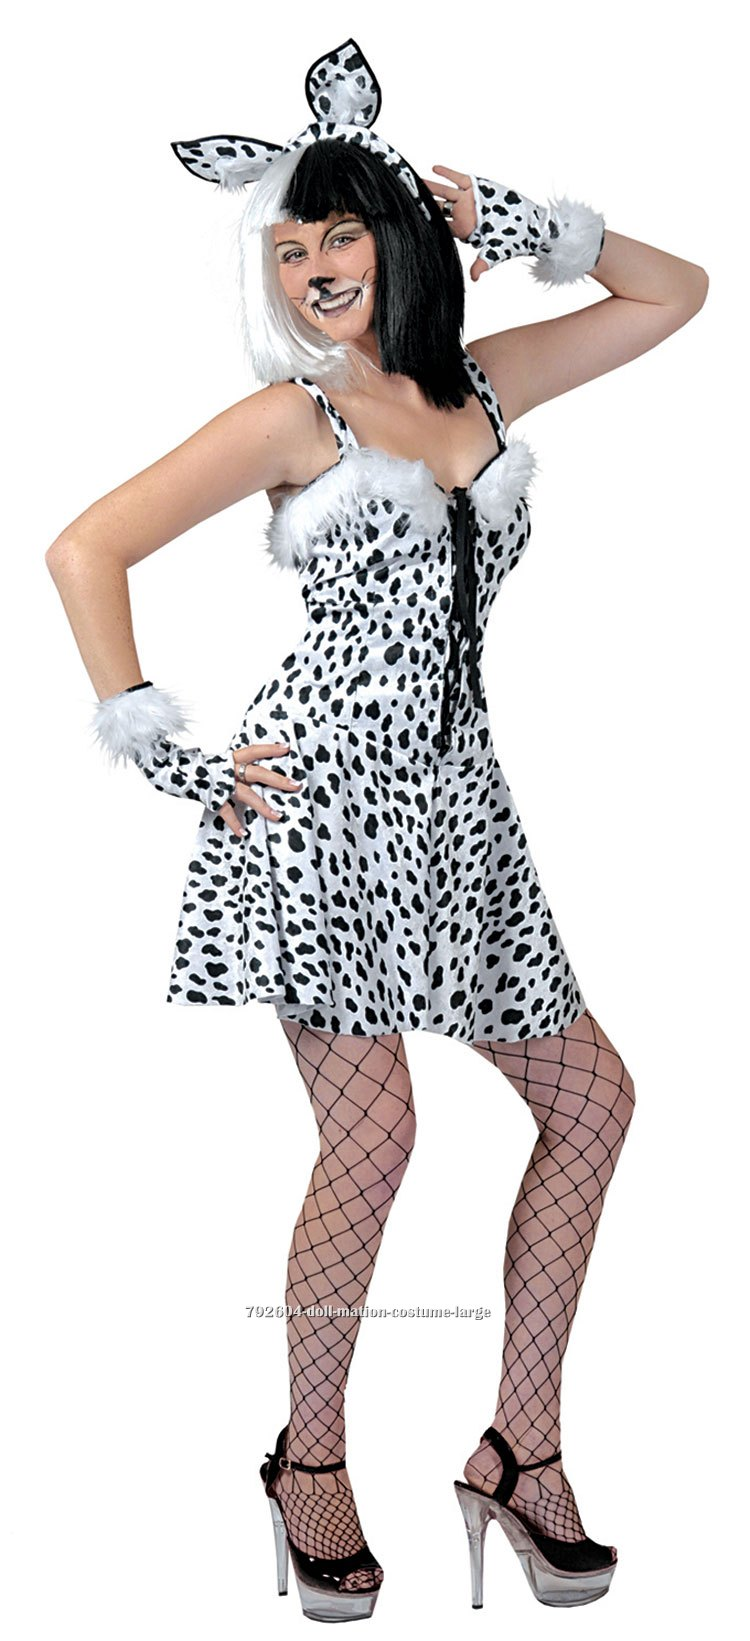 Doll-mation Costume